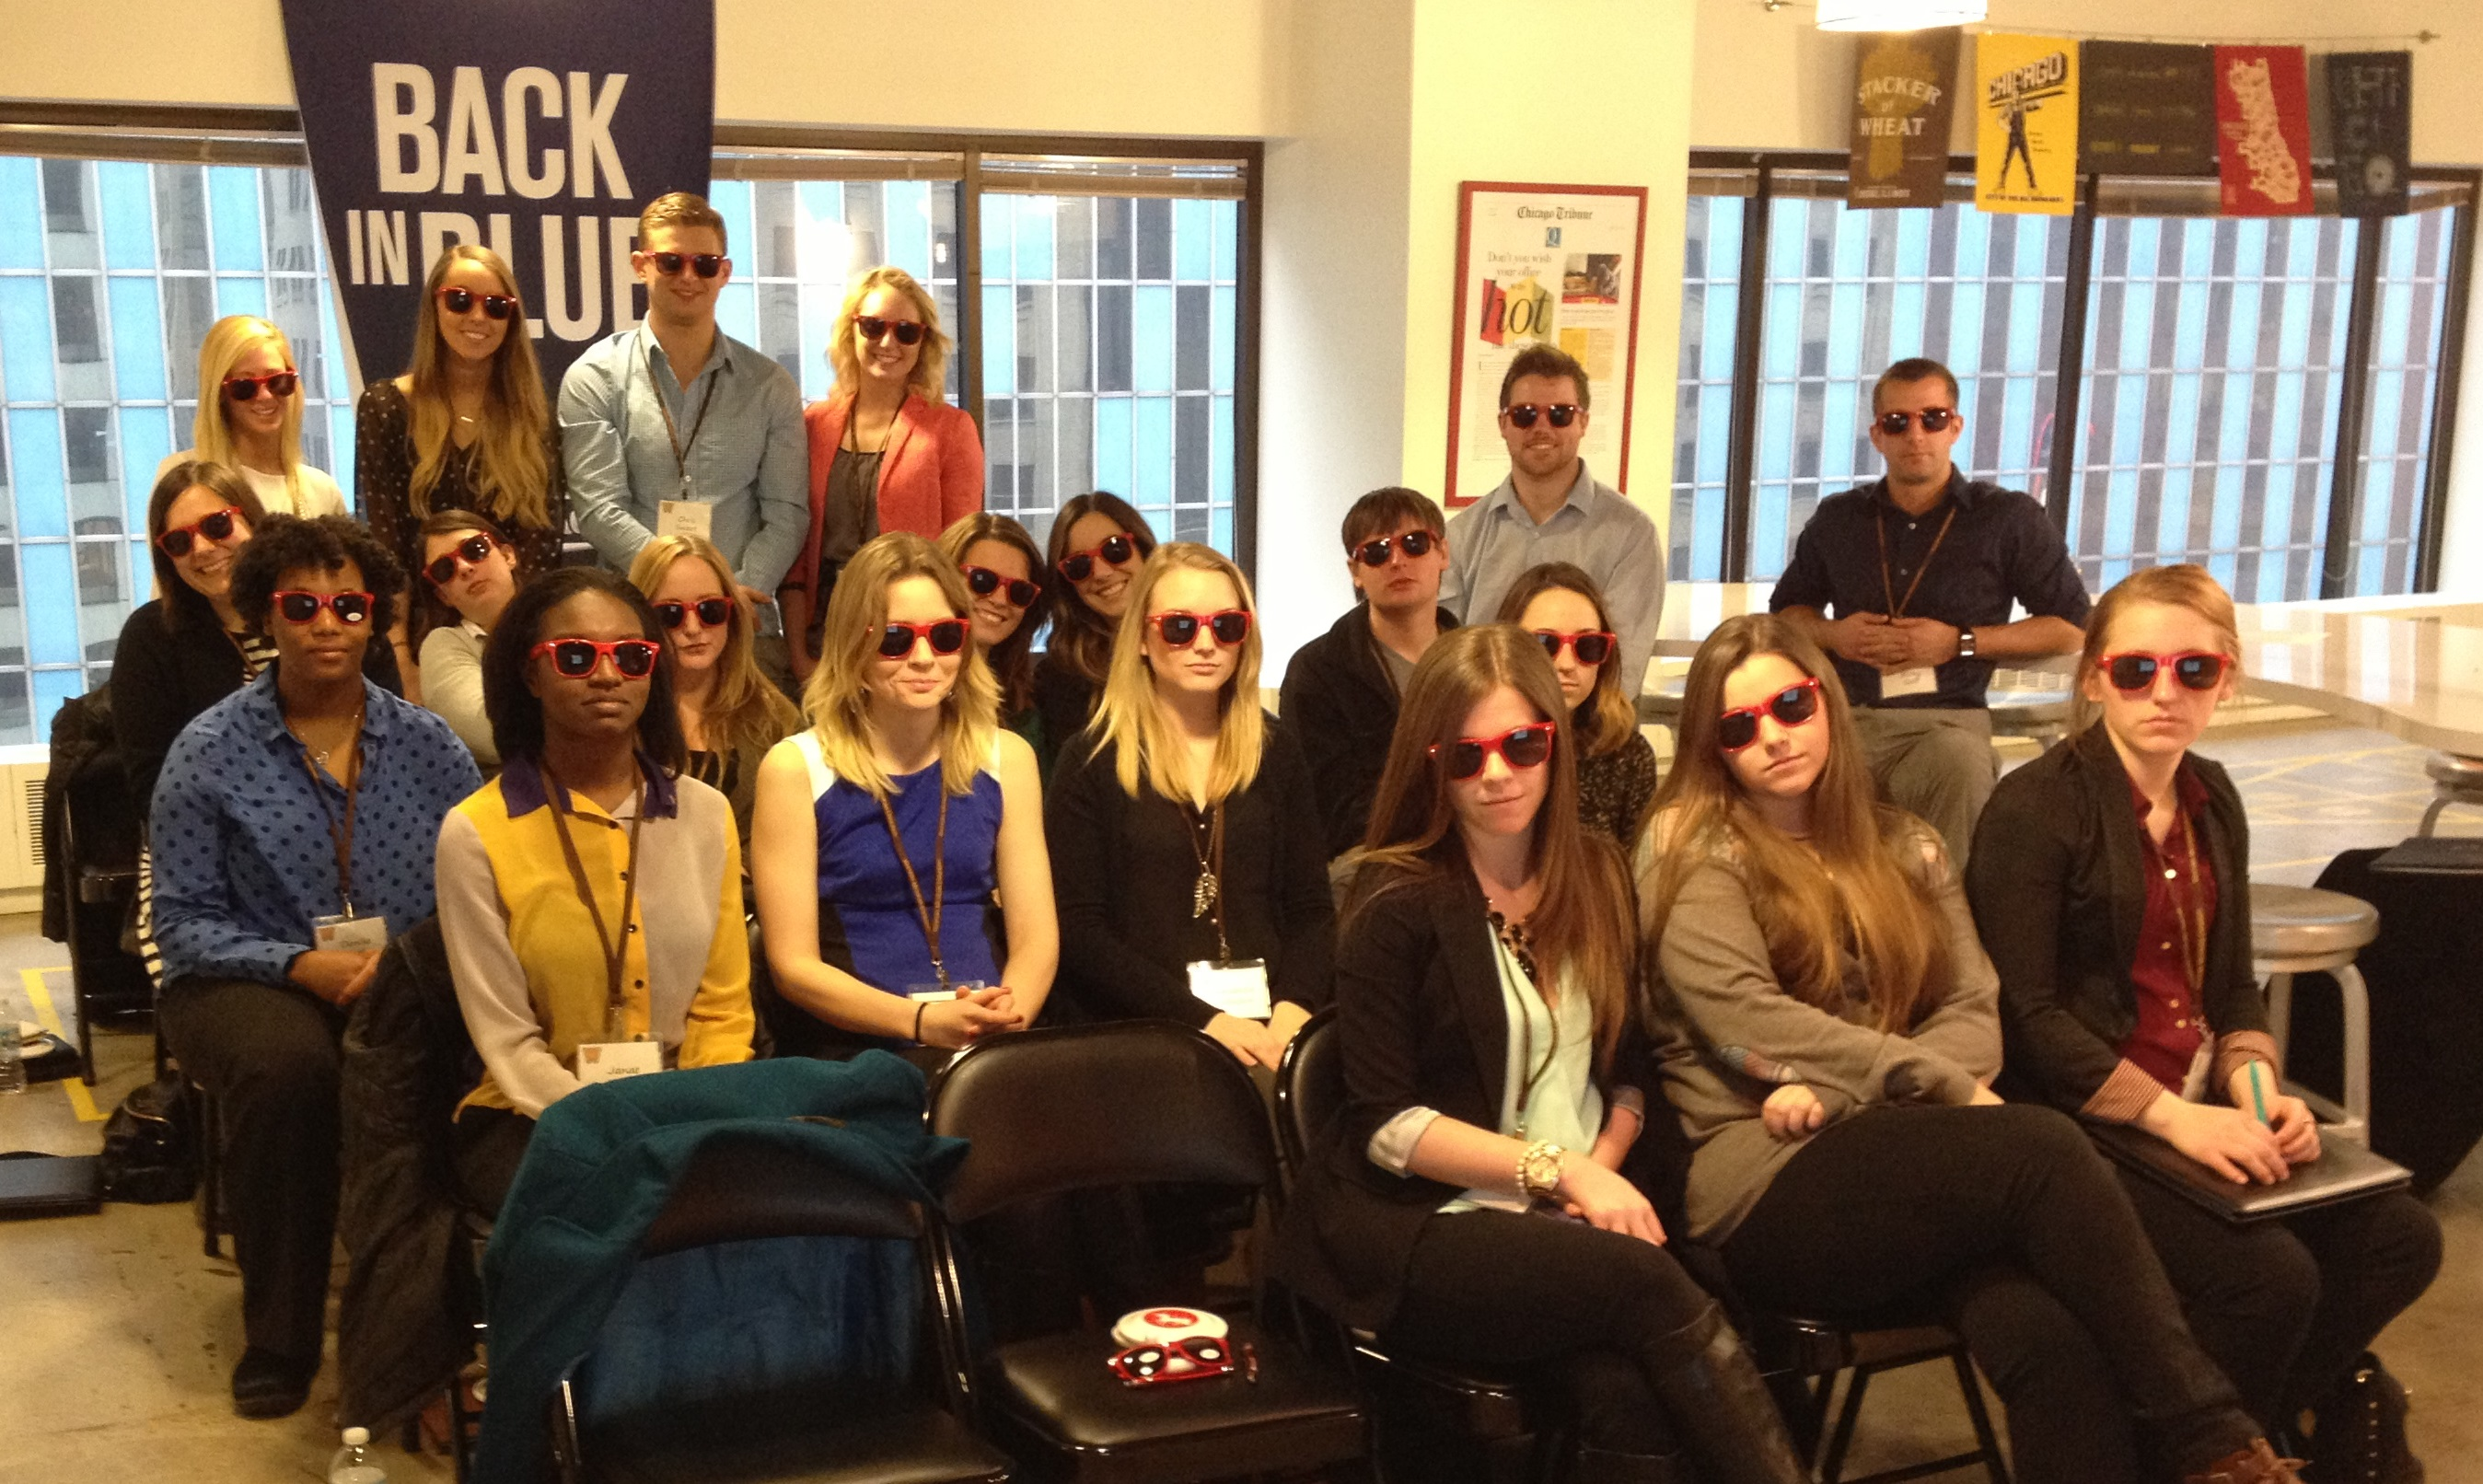 Students at Digitas with sunglasses